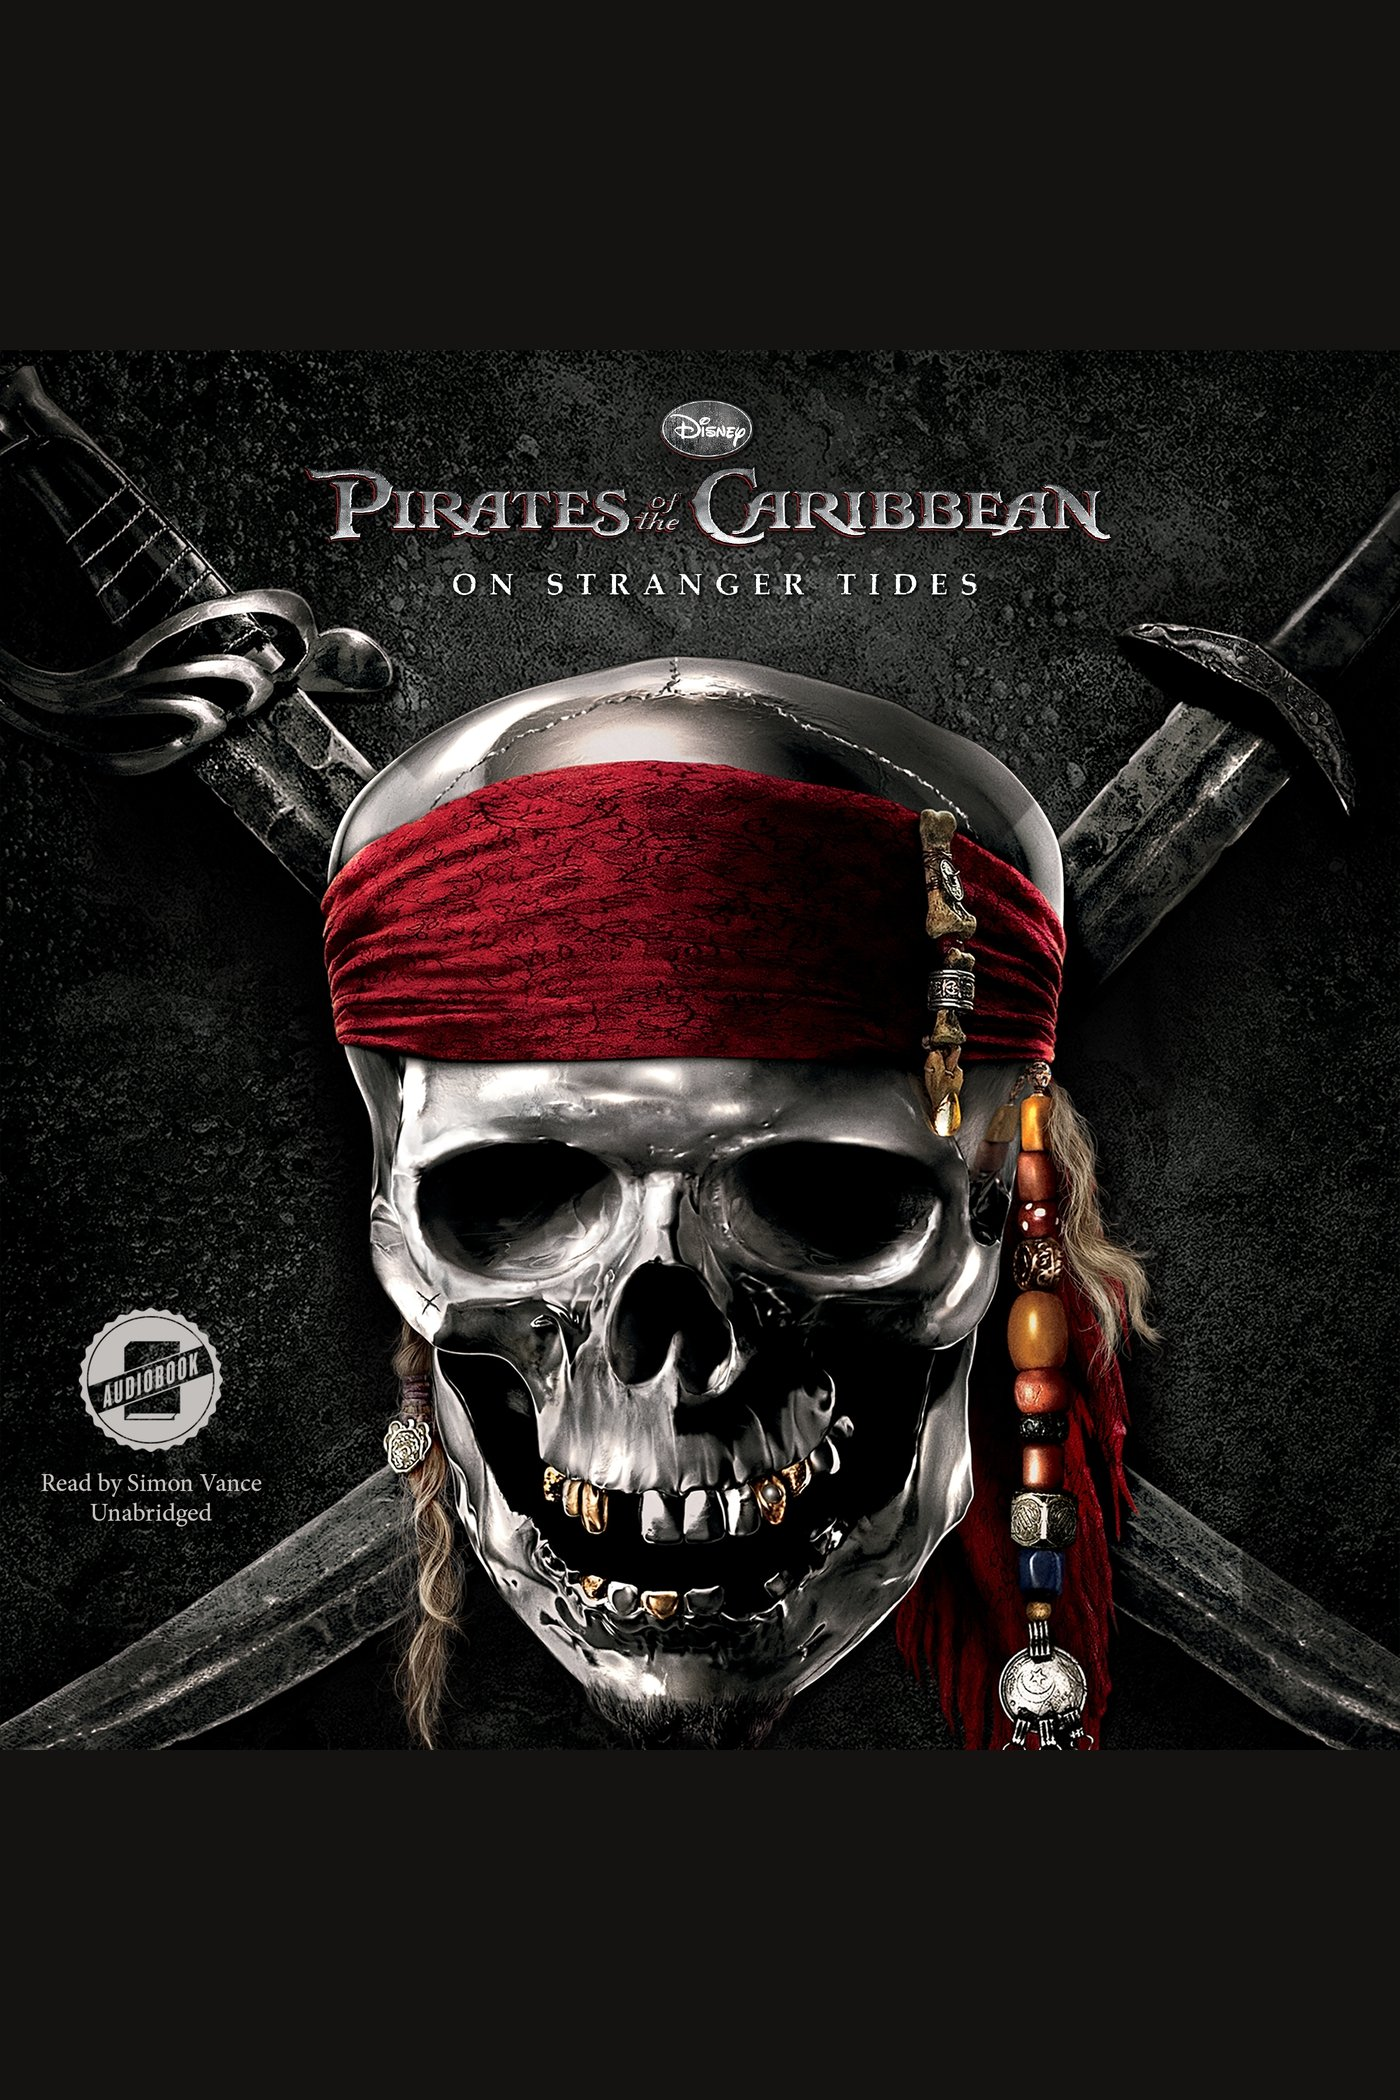 Pirates of the Caribbean on stranger tides cover image